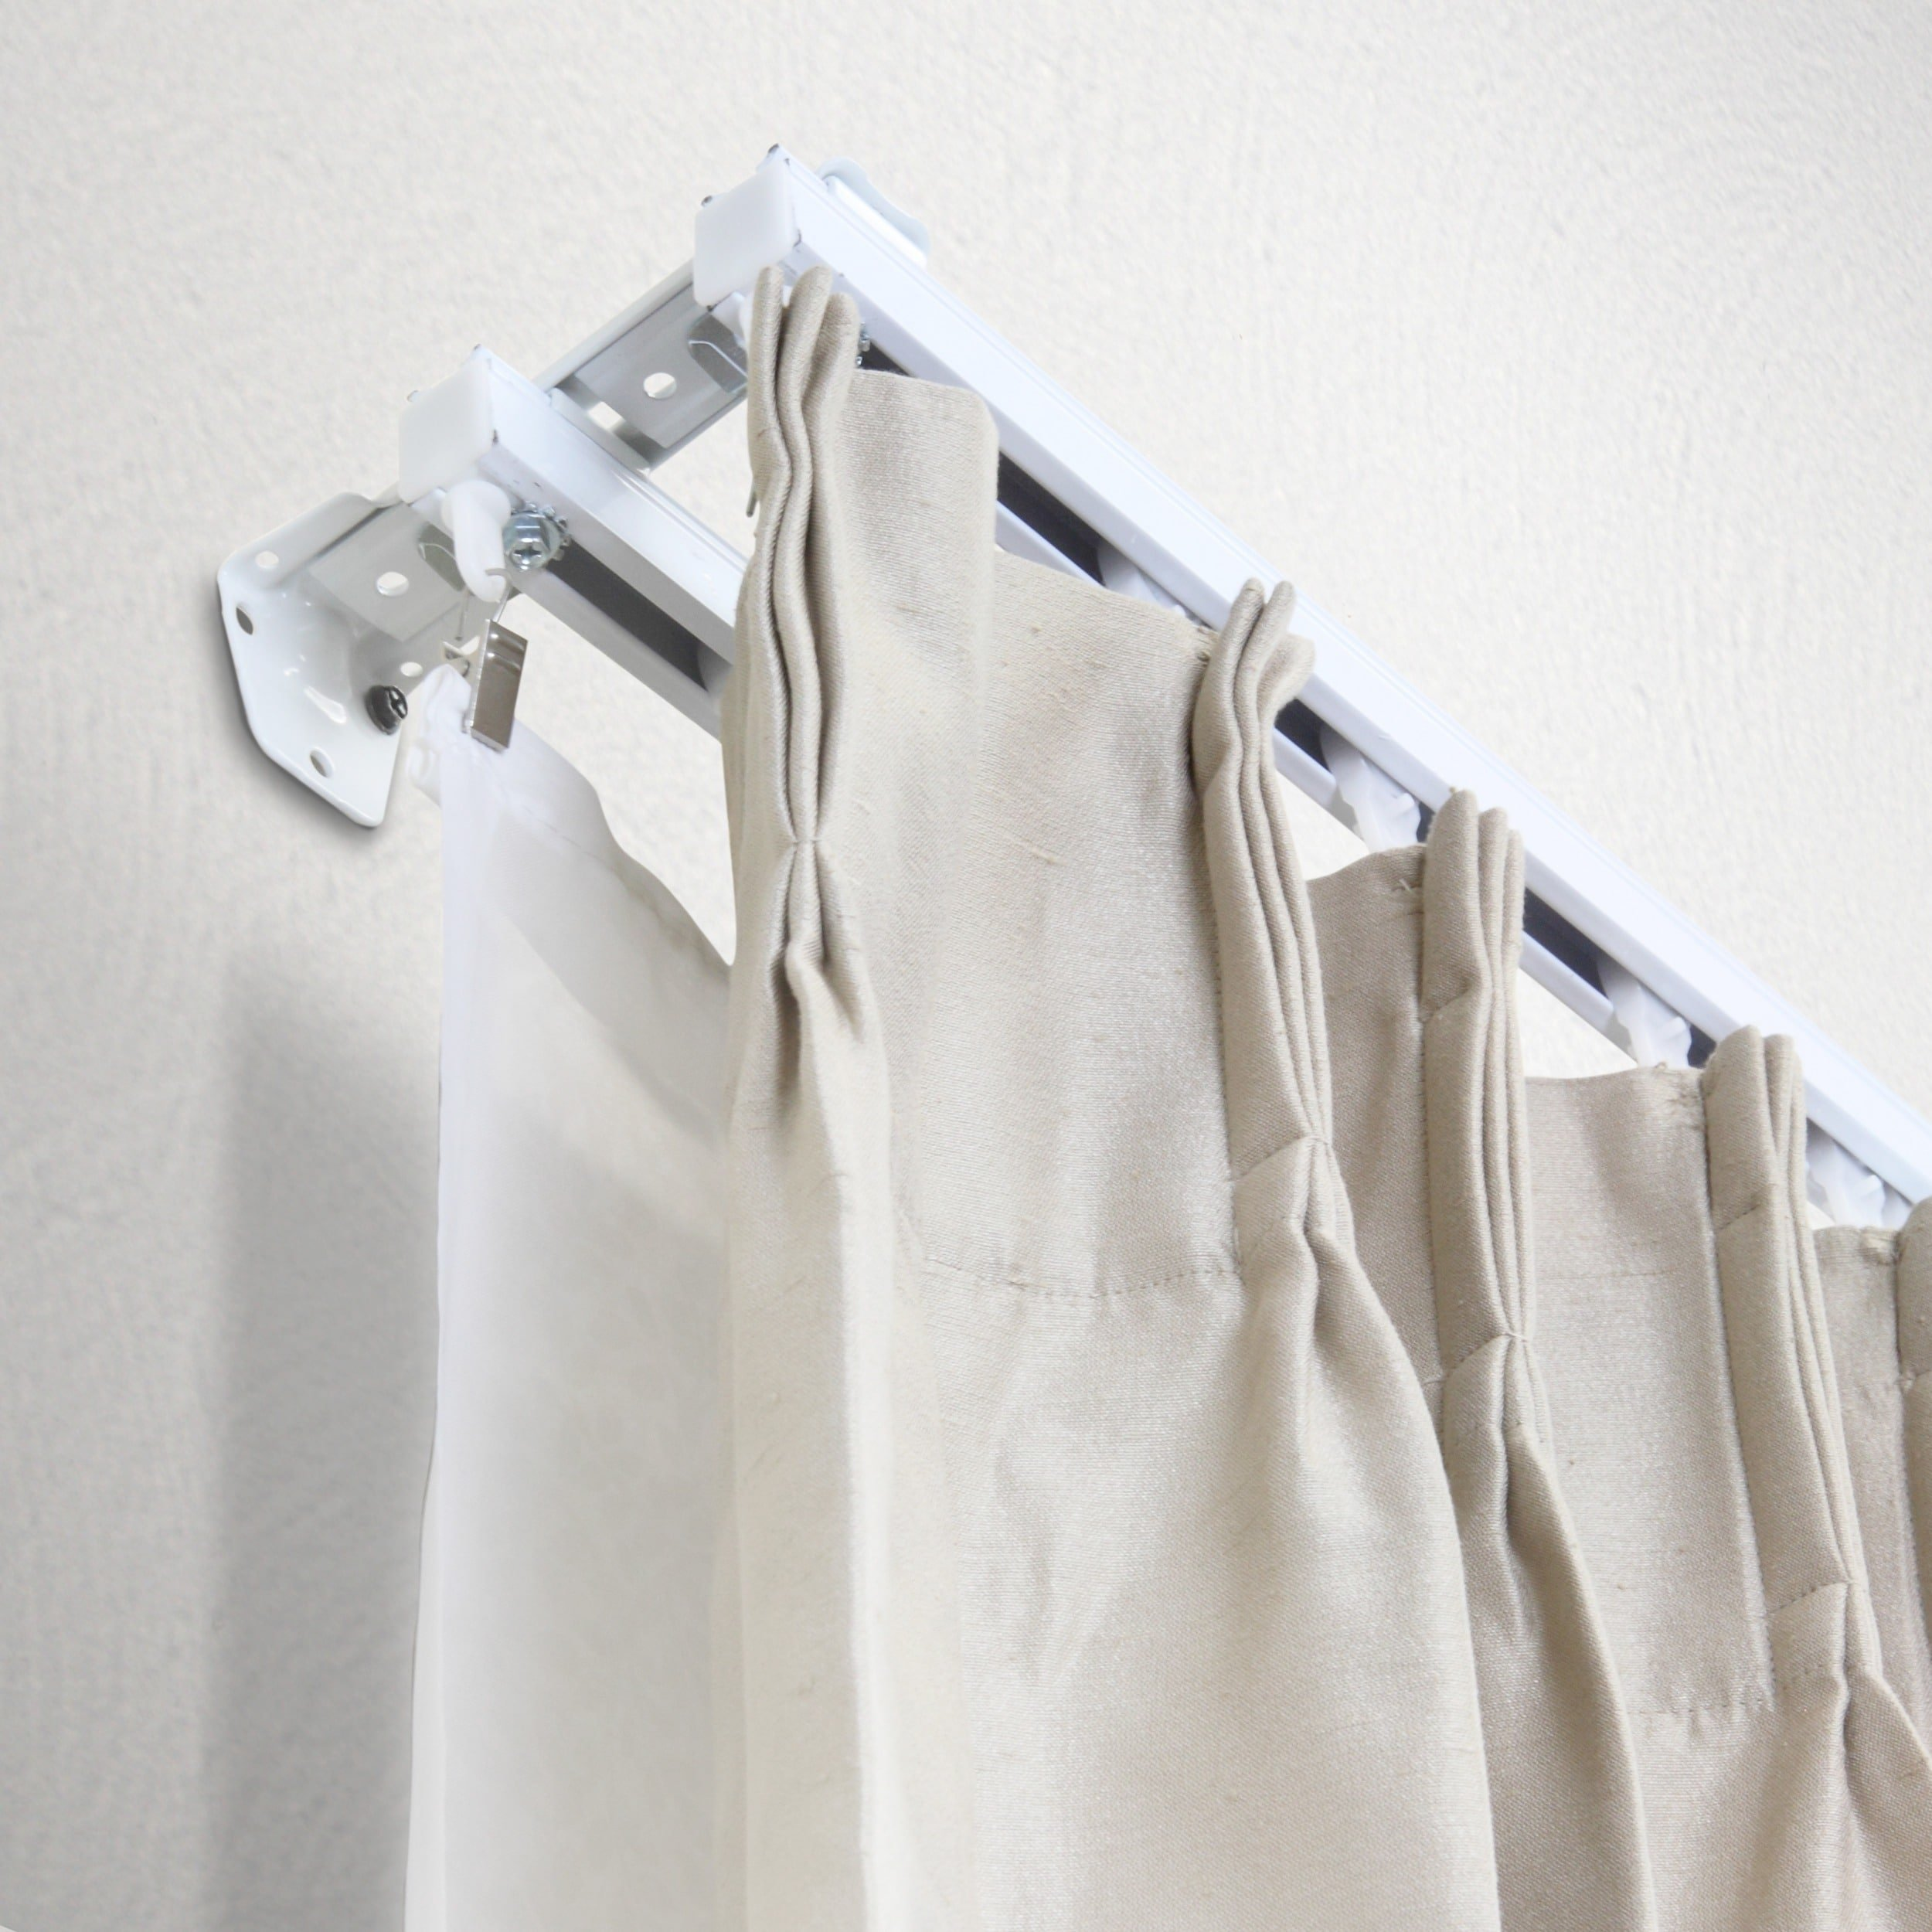 InStyleDesign Heavy Duty White Wall or Ceiling Double Curtain Track / Room Divider 12'